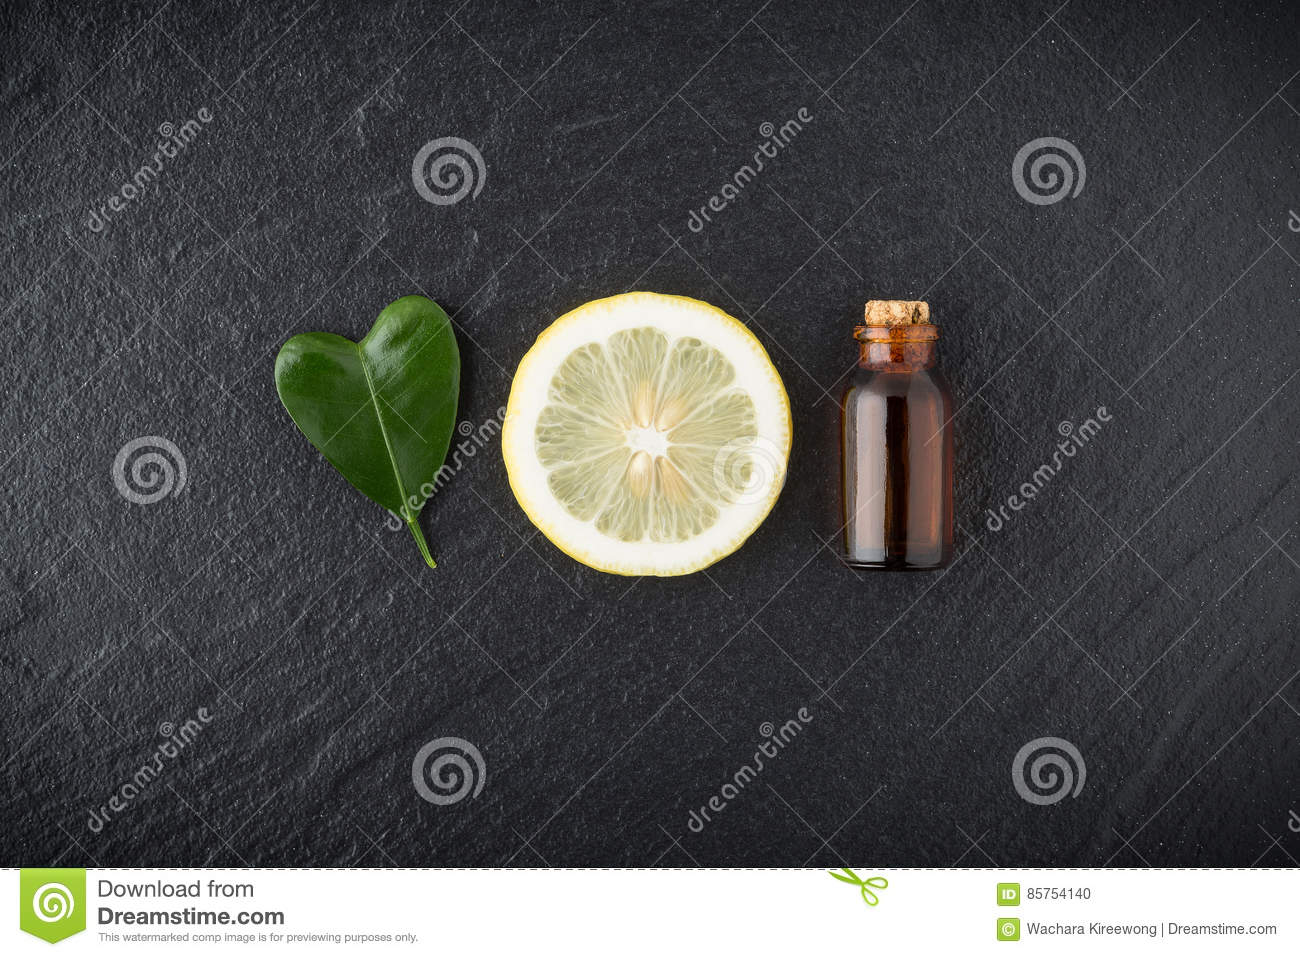 Homemade essential oil concept. Bottle essential oil with slice